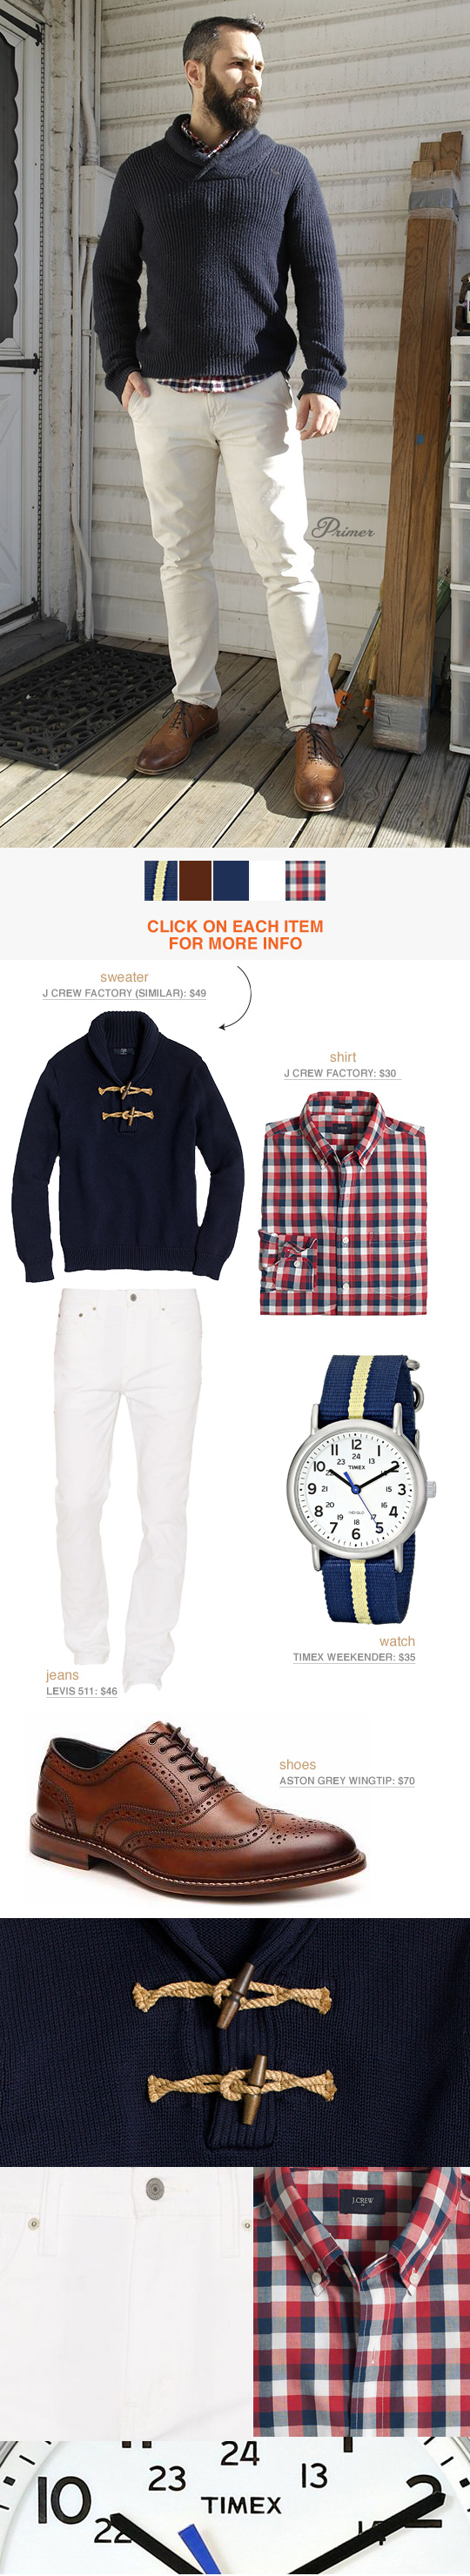 An outfit example featuring white jeans, blue sweater, and red plaid shirt